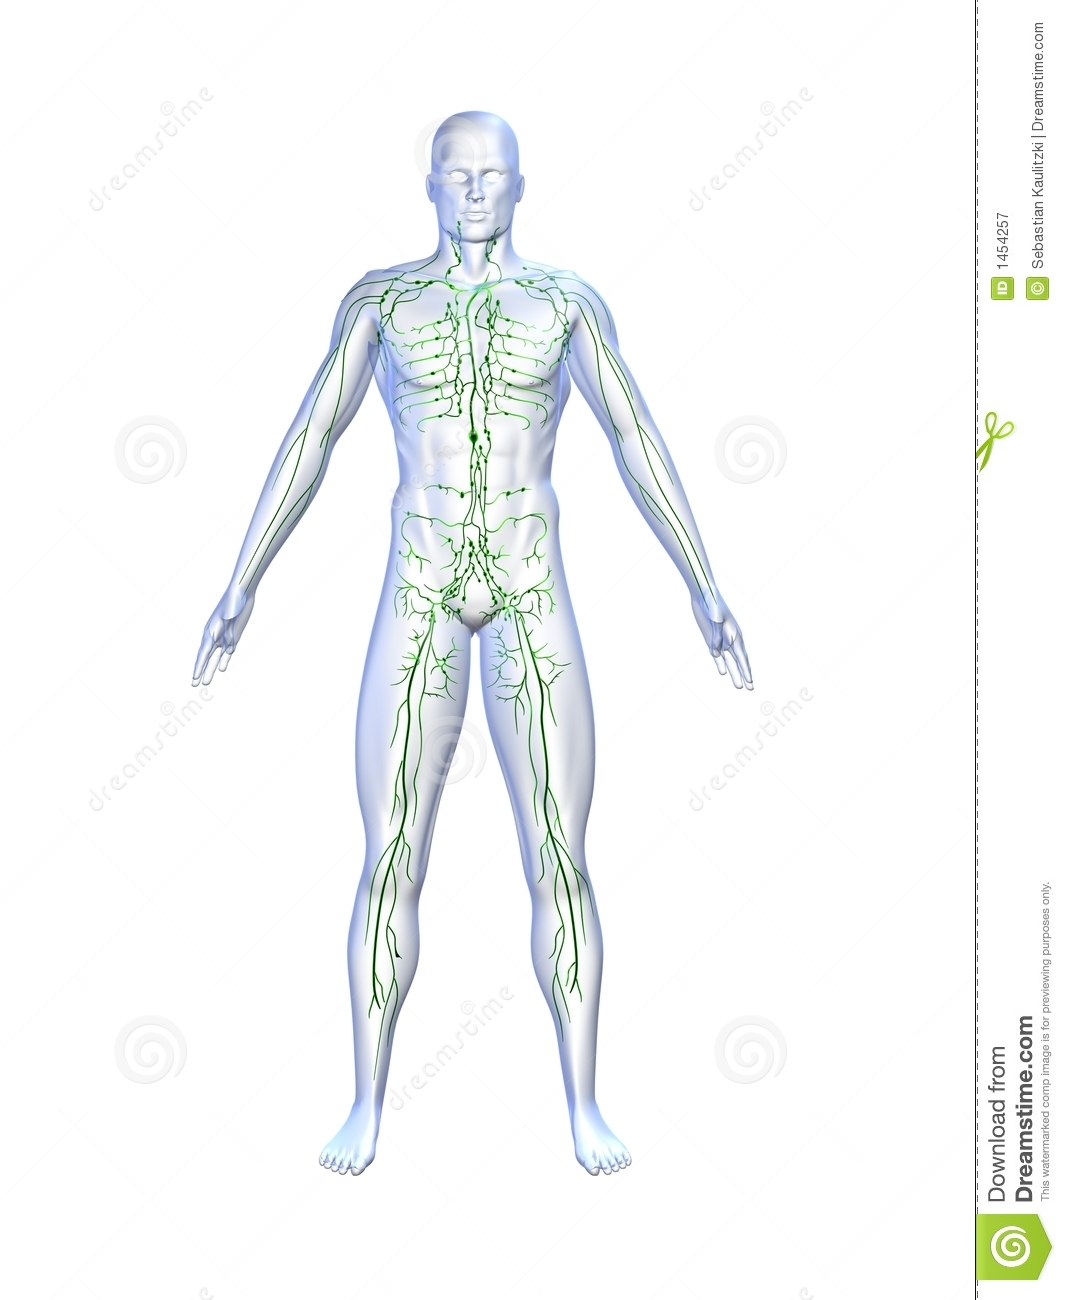 Lymphatic System Stock Illustration Illustration Of Medical 1454257